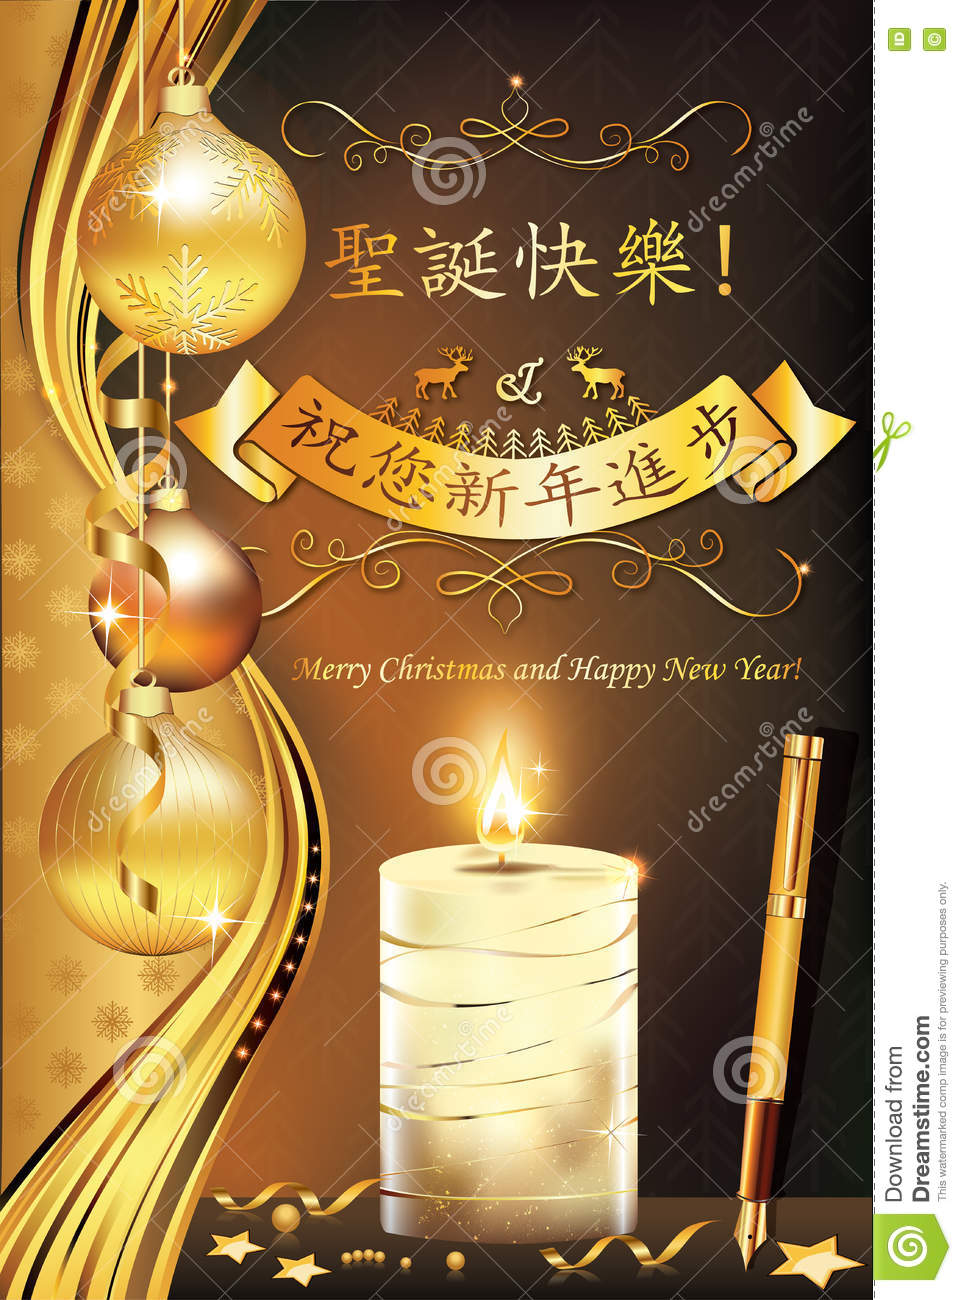 Elegant Business Chinese Greeting Card For Winter Season Stock